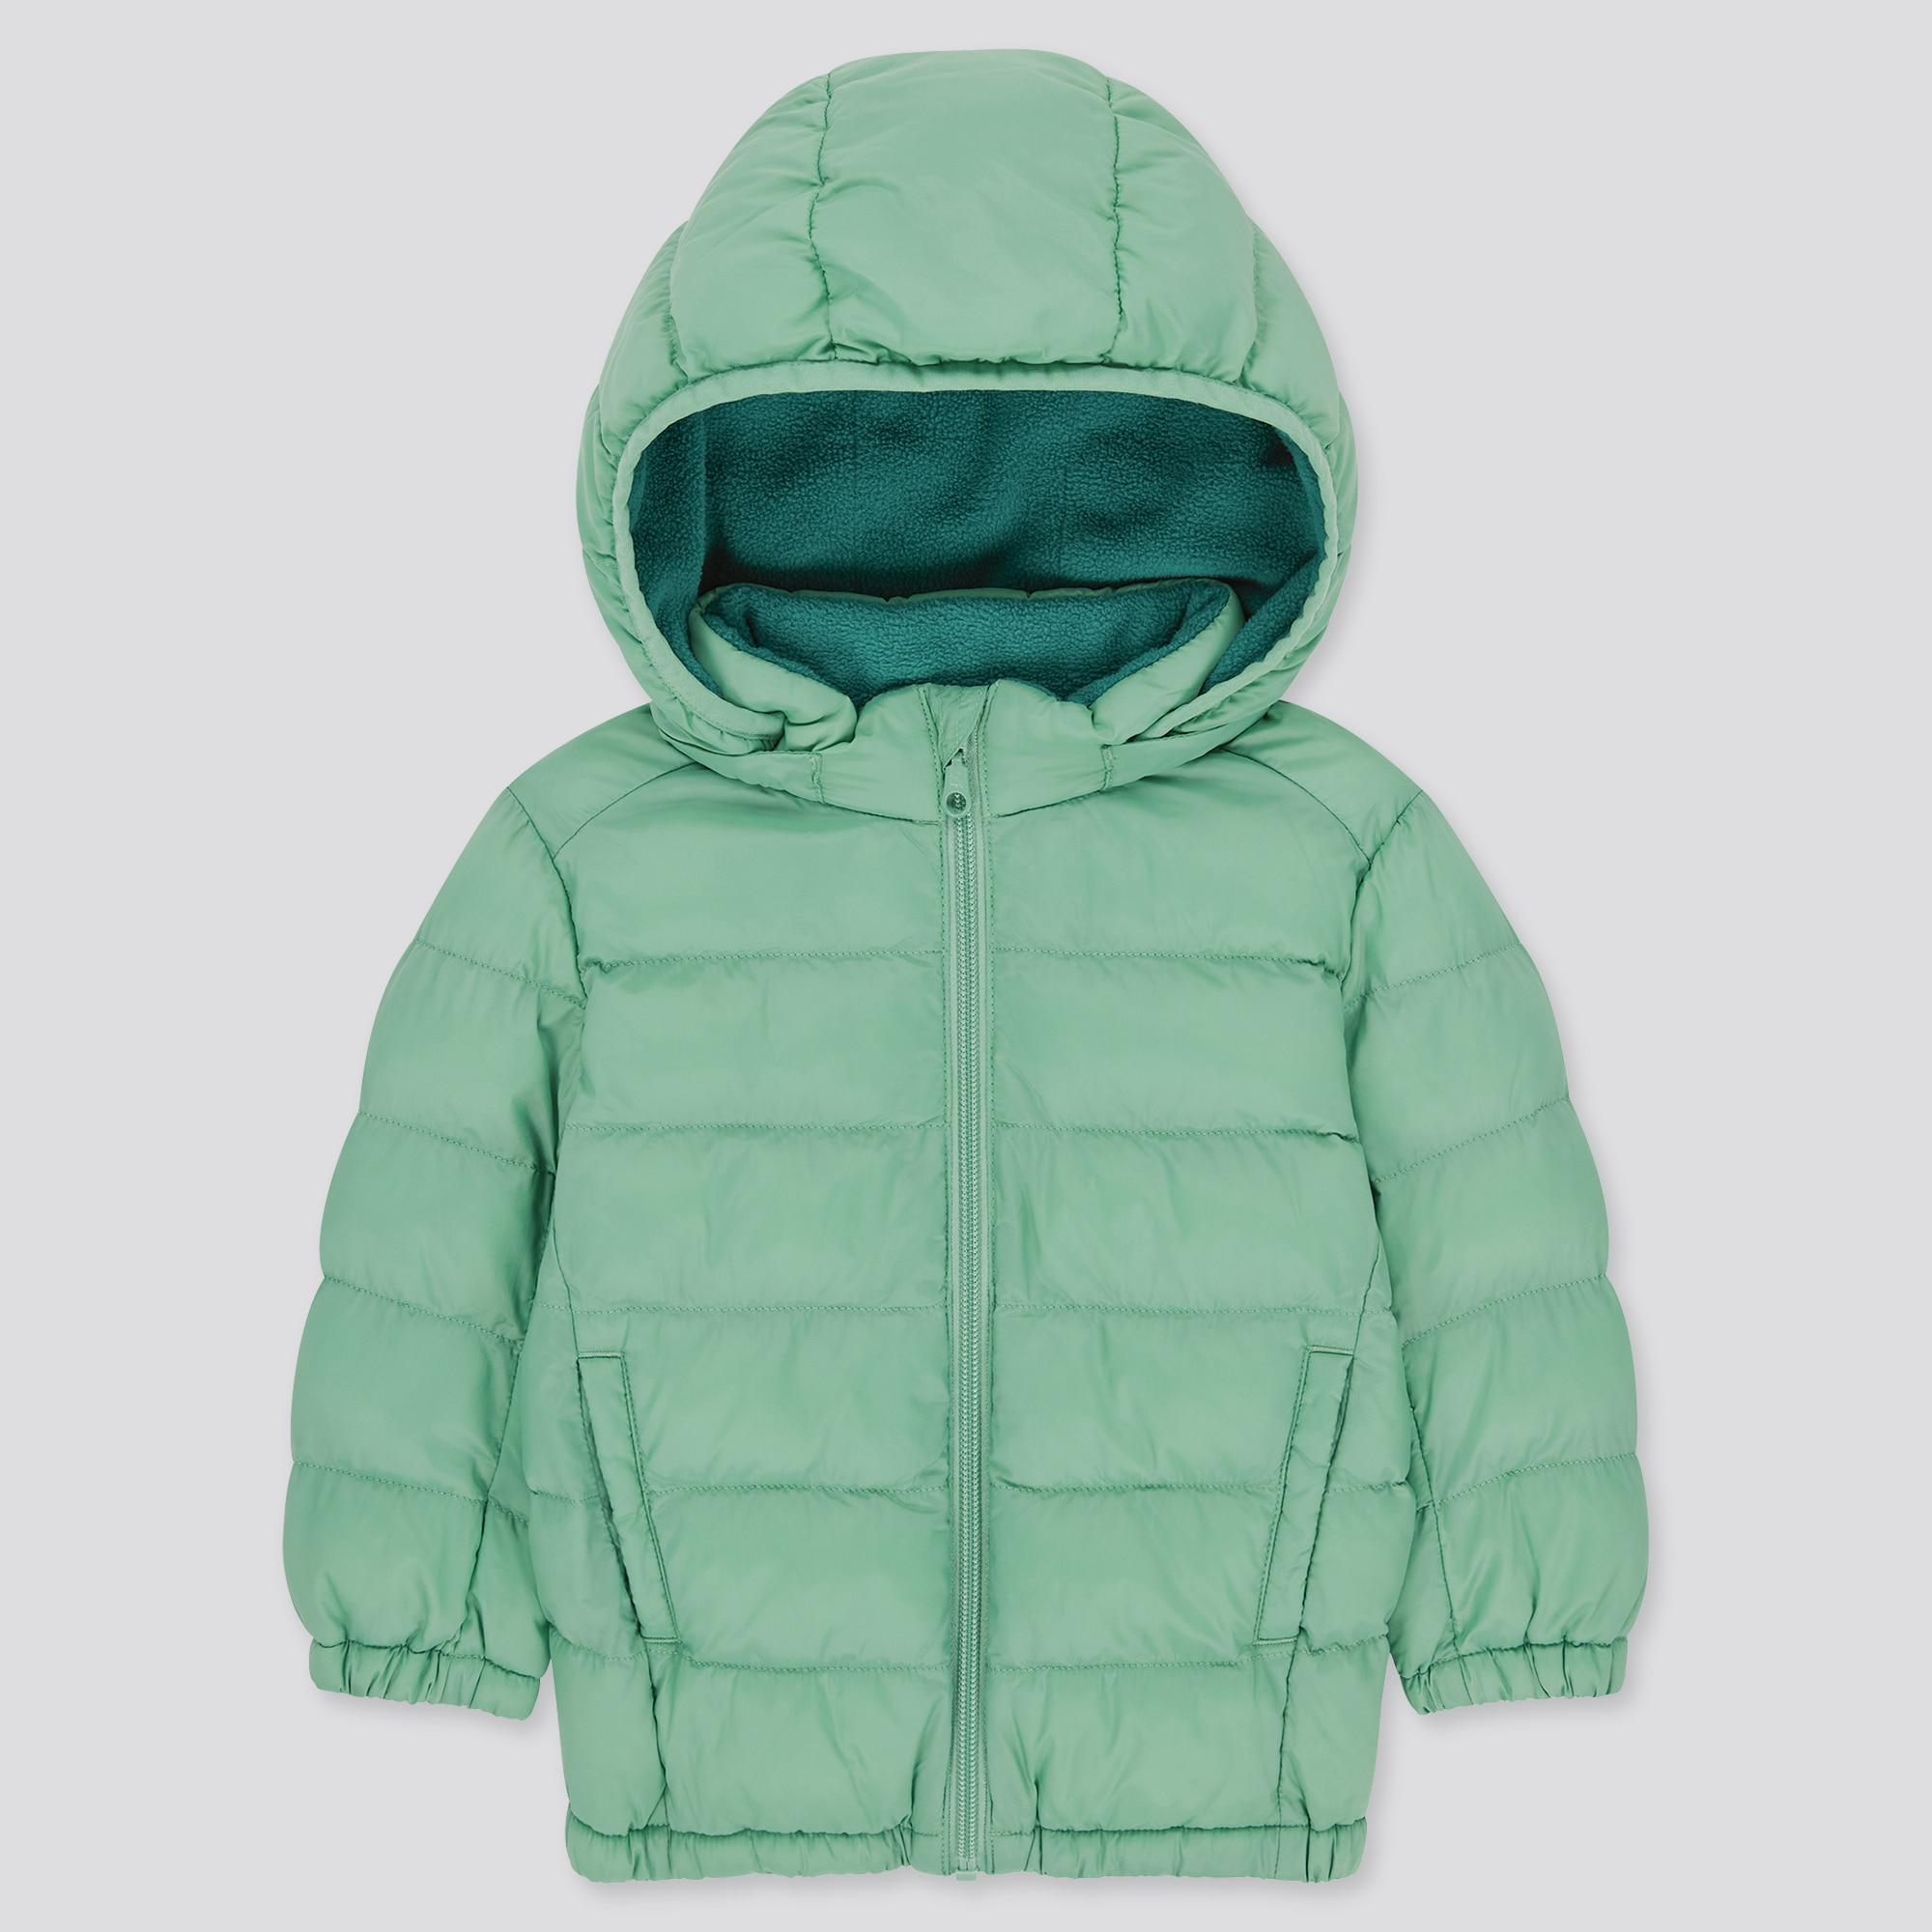 Uniqlo TODDLER LIGHT WARM PADDED FULL-ZIP PARKA